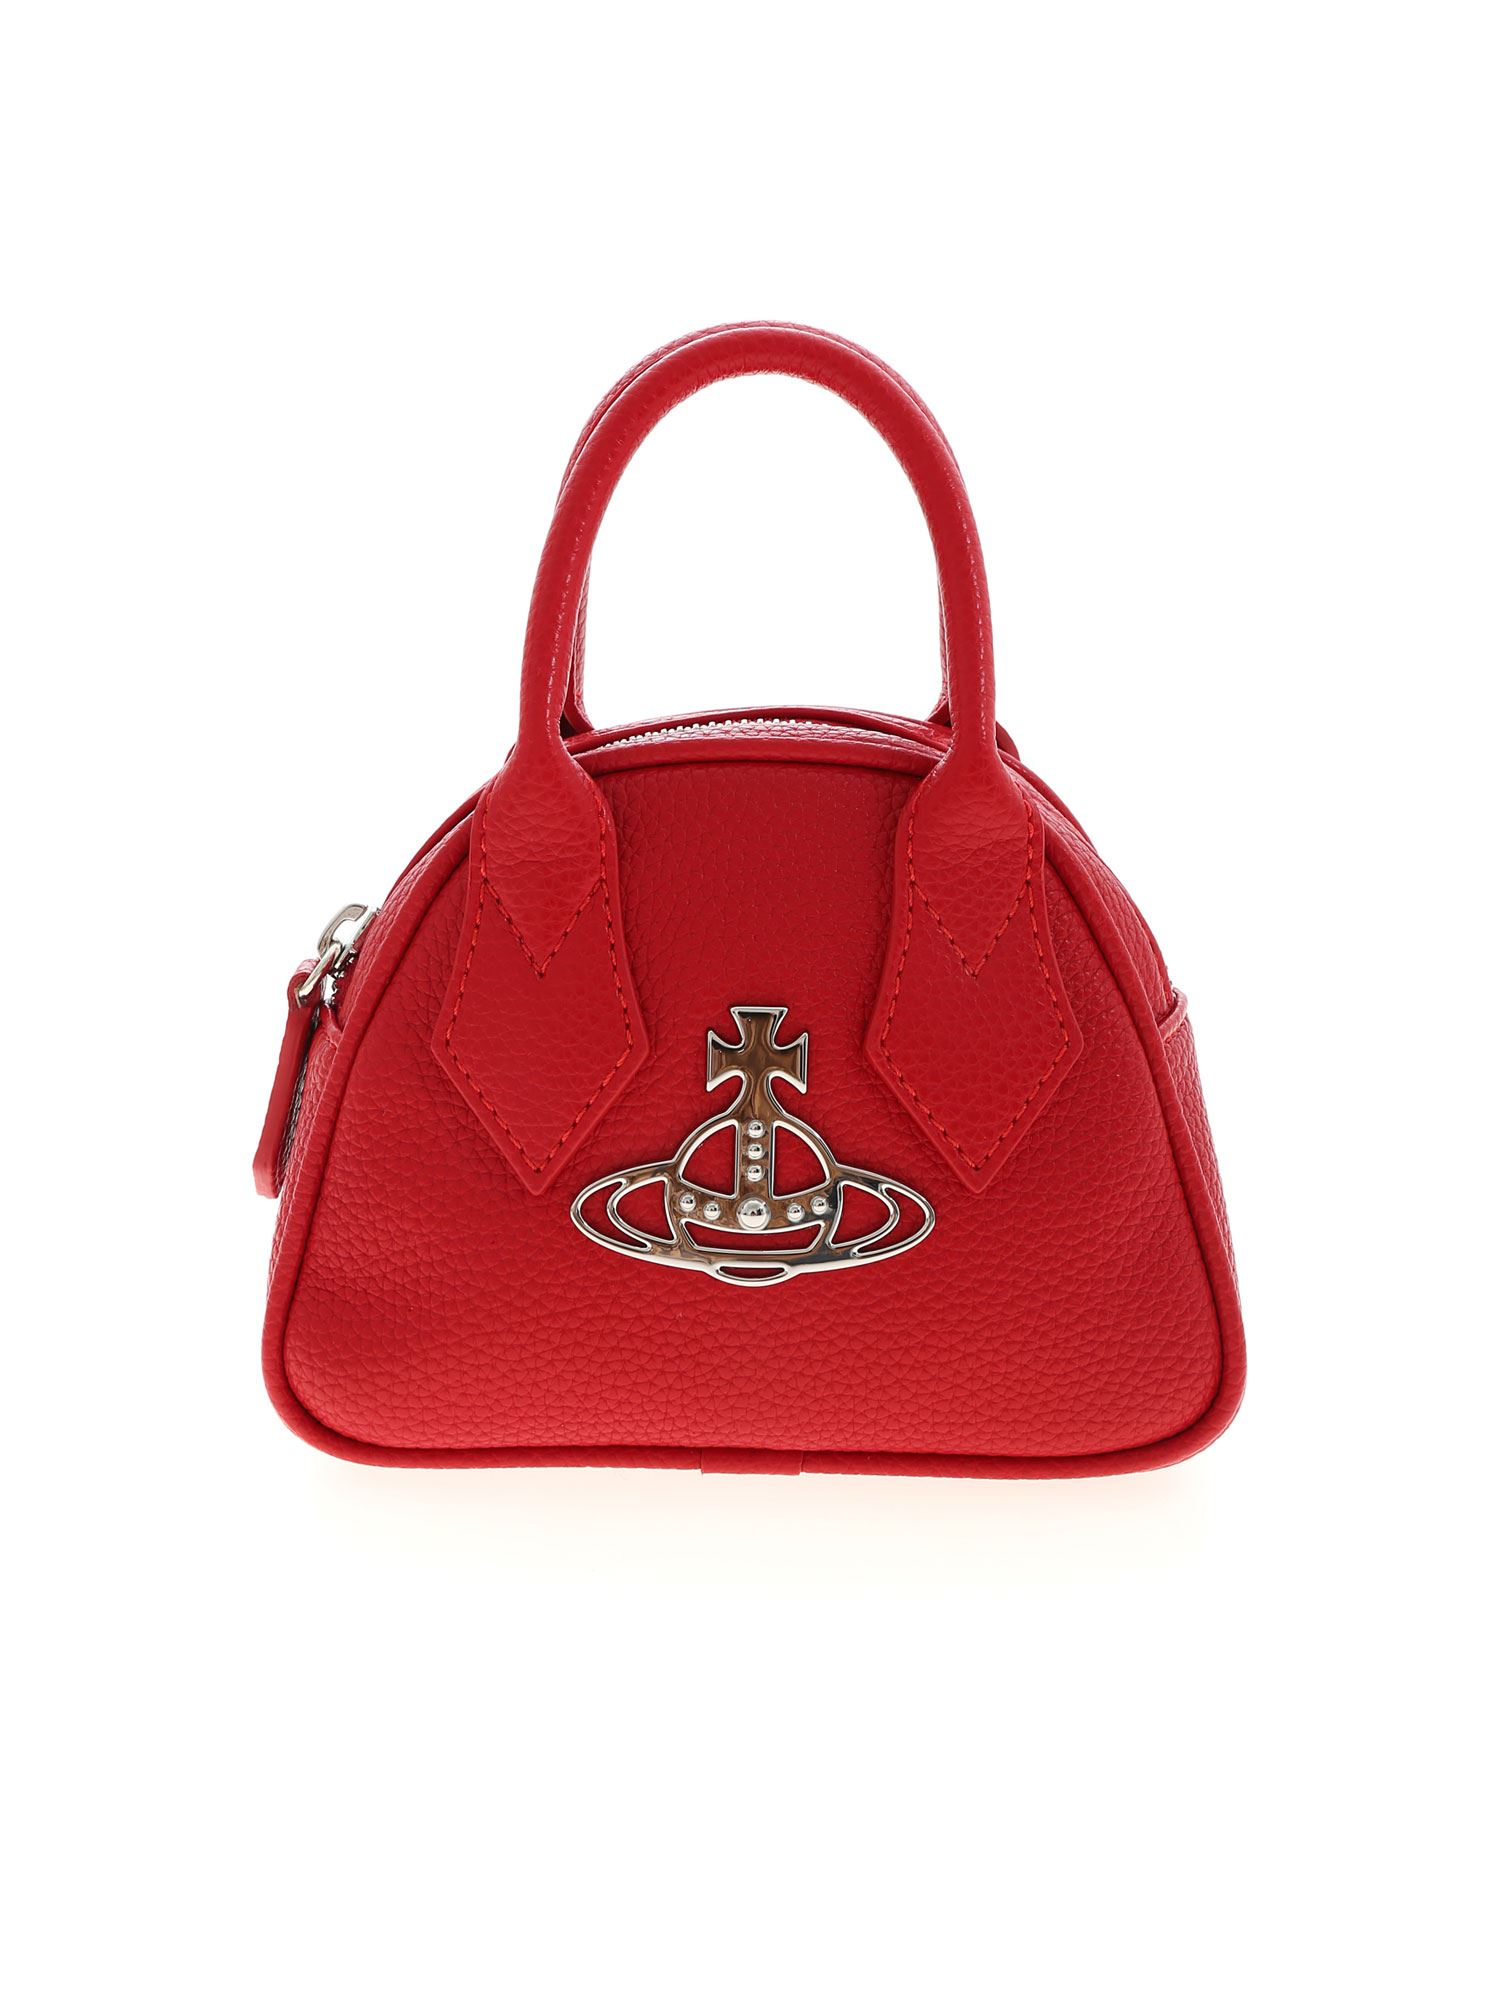 Vivienne Westwood JOHANNA MINI YASMINE BAG IN RED